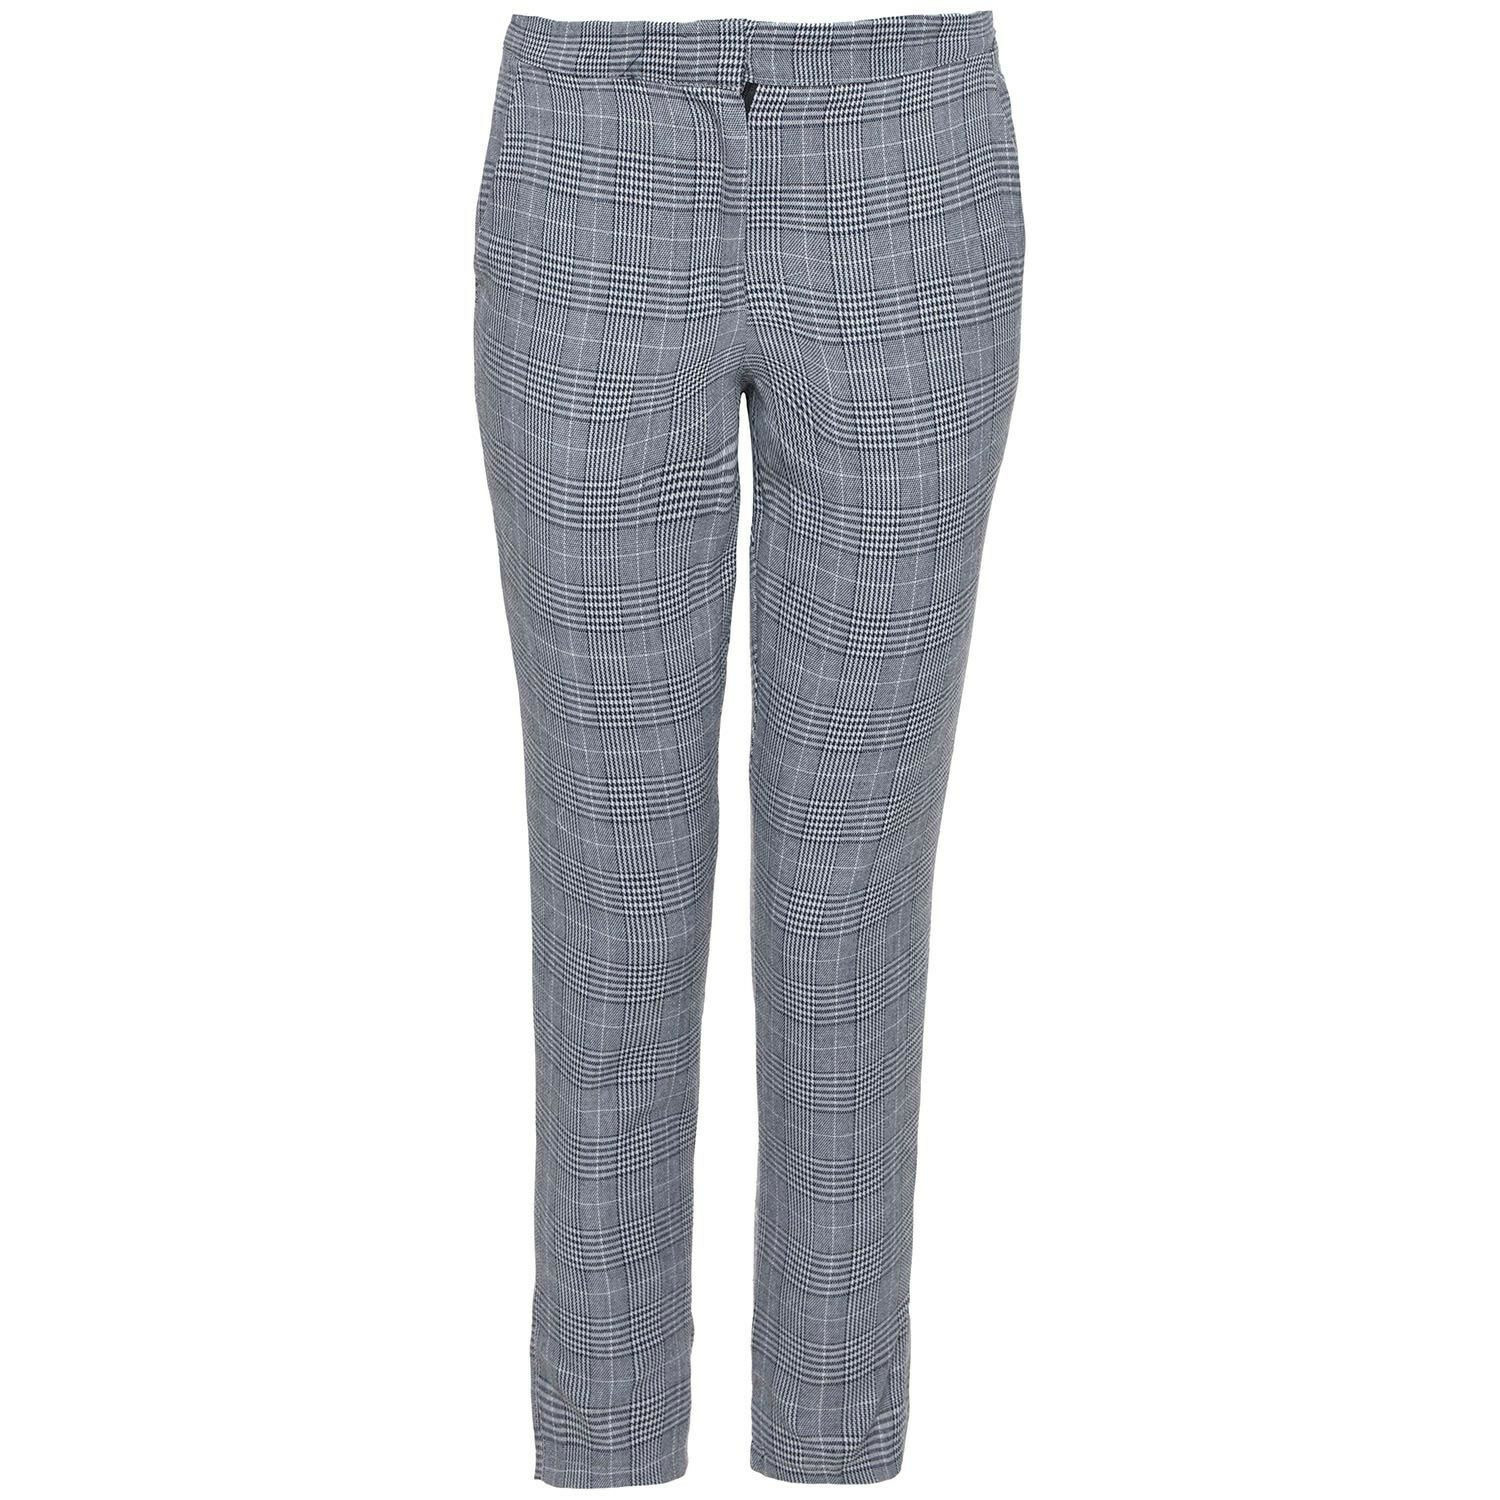 GREY DETAIL CHECK TROUSERS